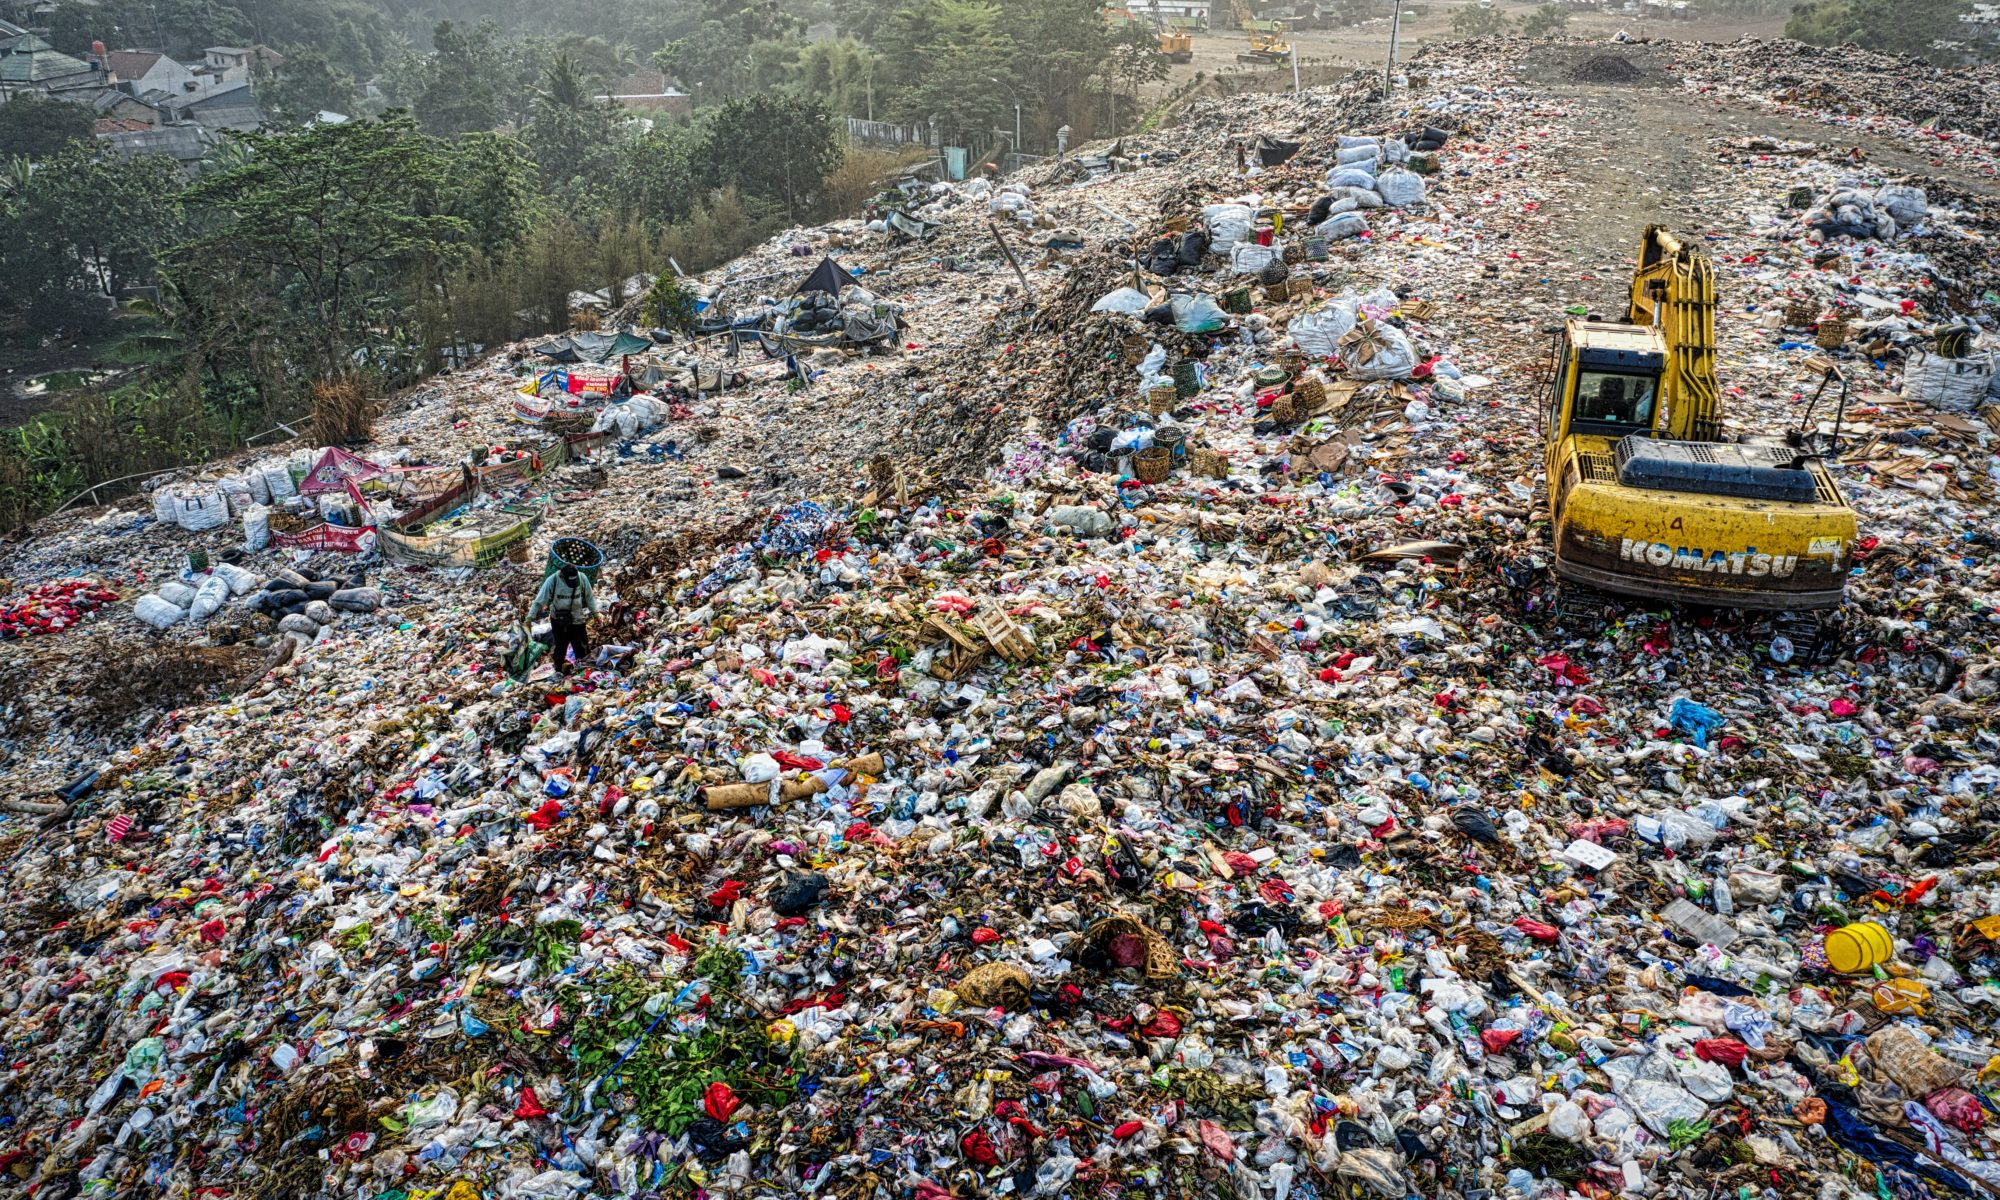 In the last 10 years we have made more plastics than we did in the last 100 years.